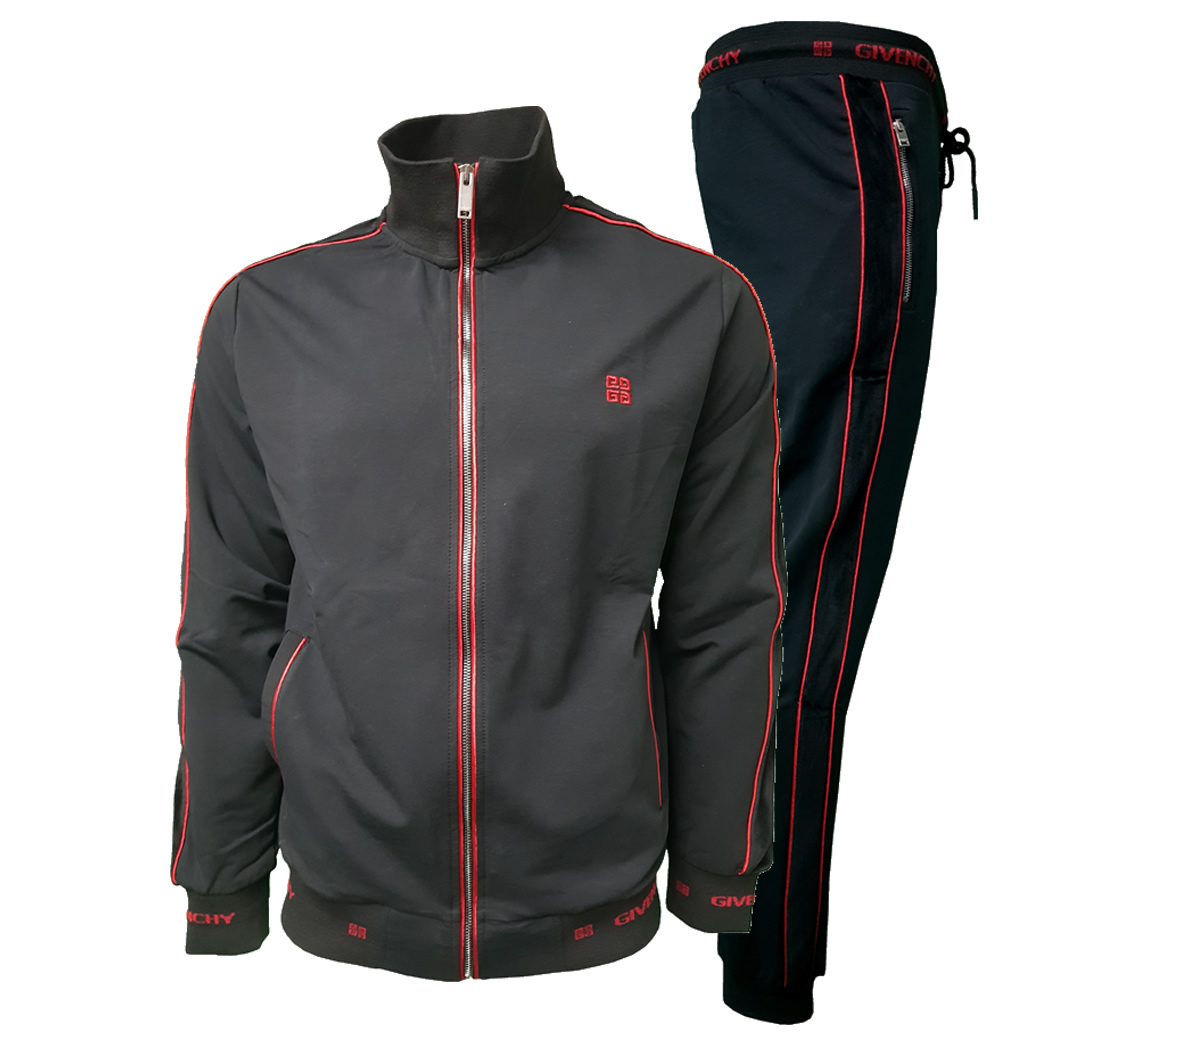 30a78251ee397 Givenchy Men s Complete 2 Piece Top and Bottoms Tracksuit in Black Red -  SideBySide